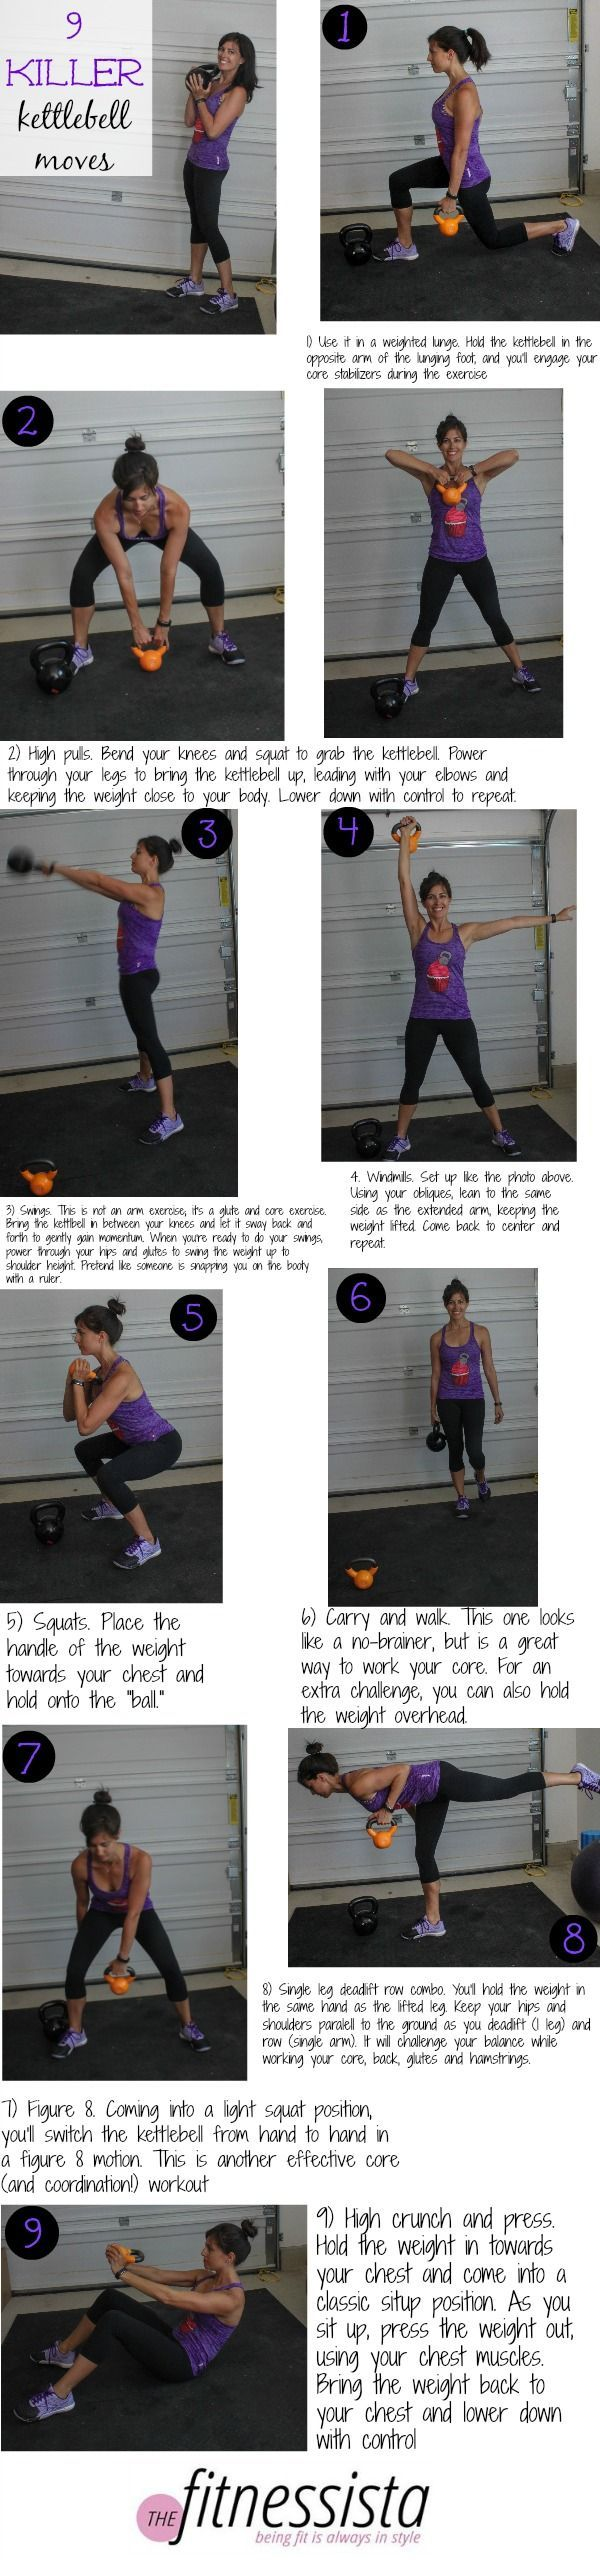 best work outs images on pinterest workouts circuit workouts